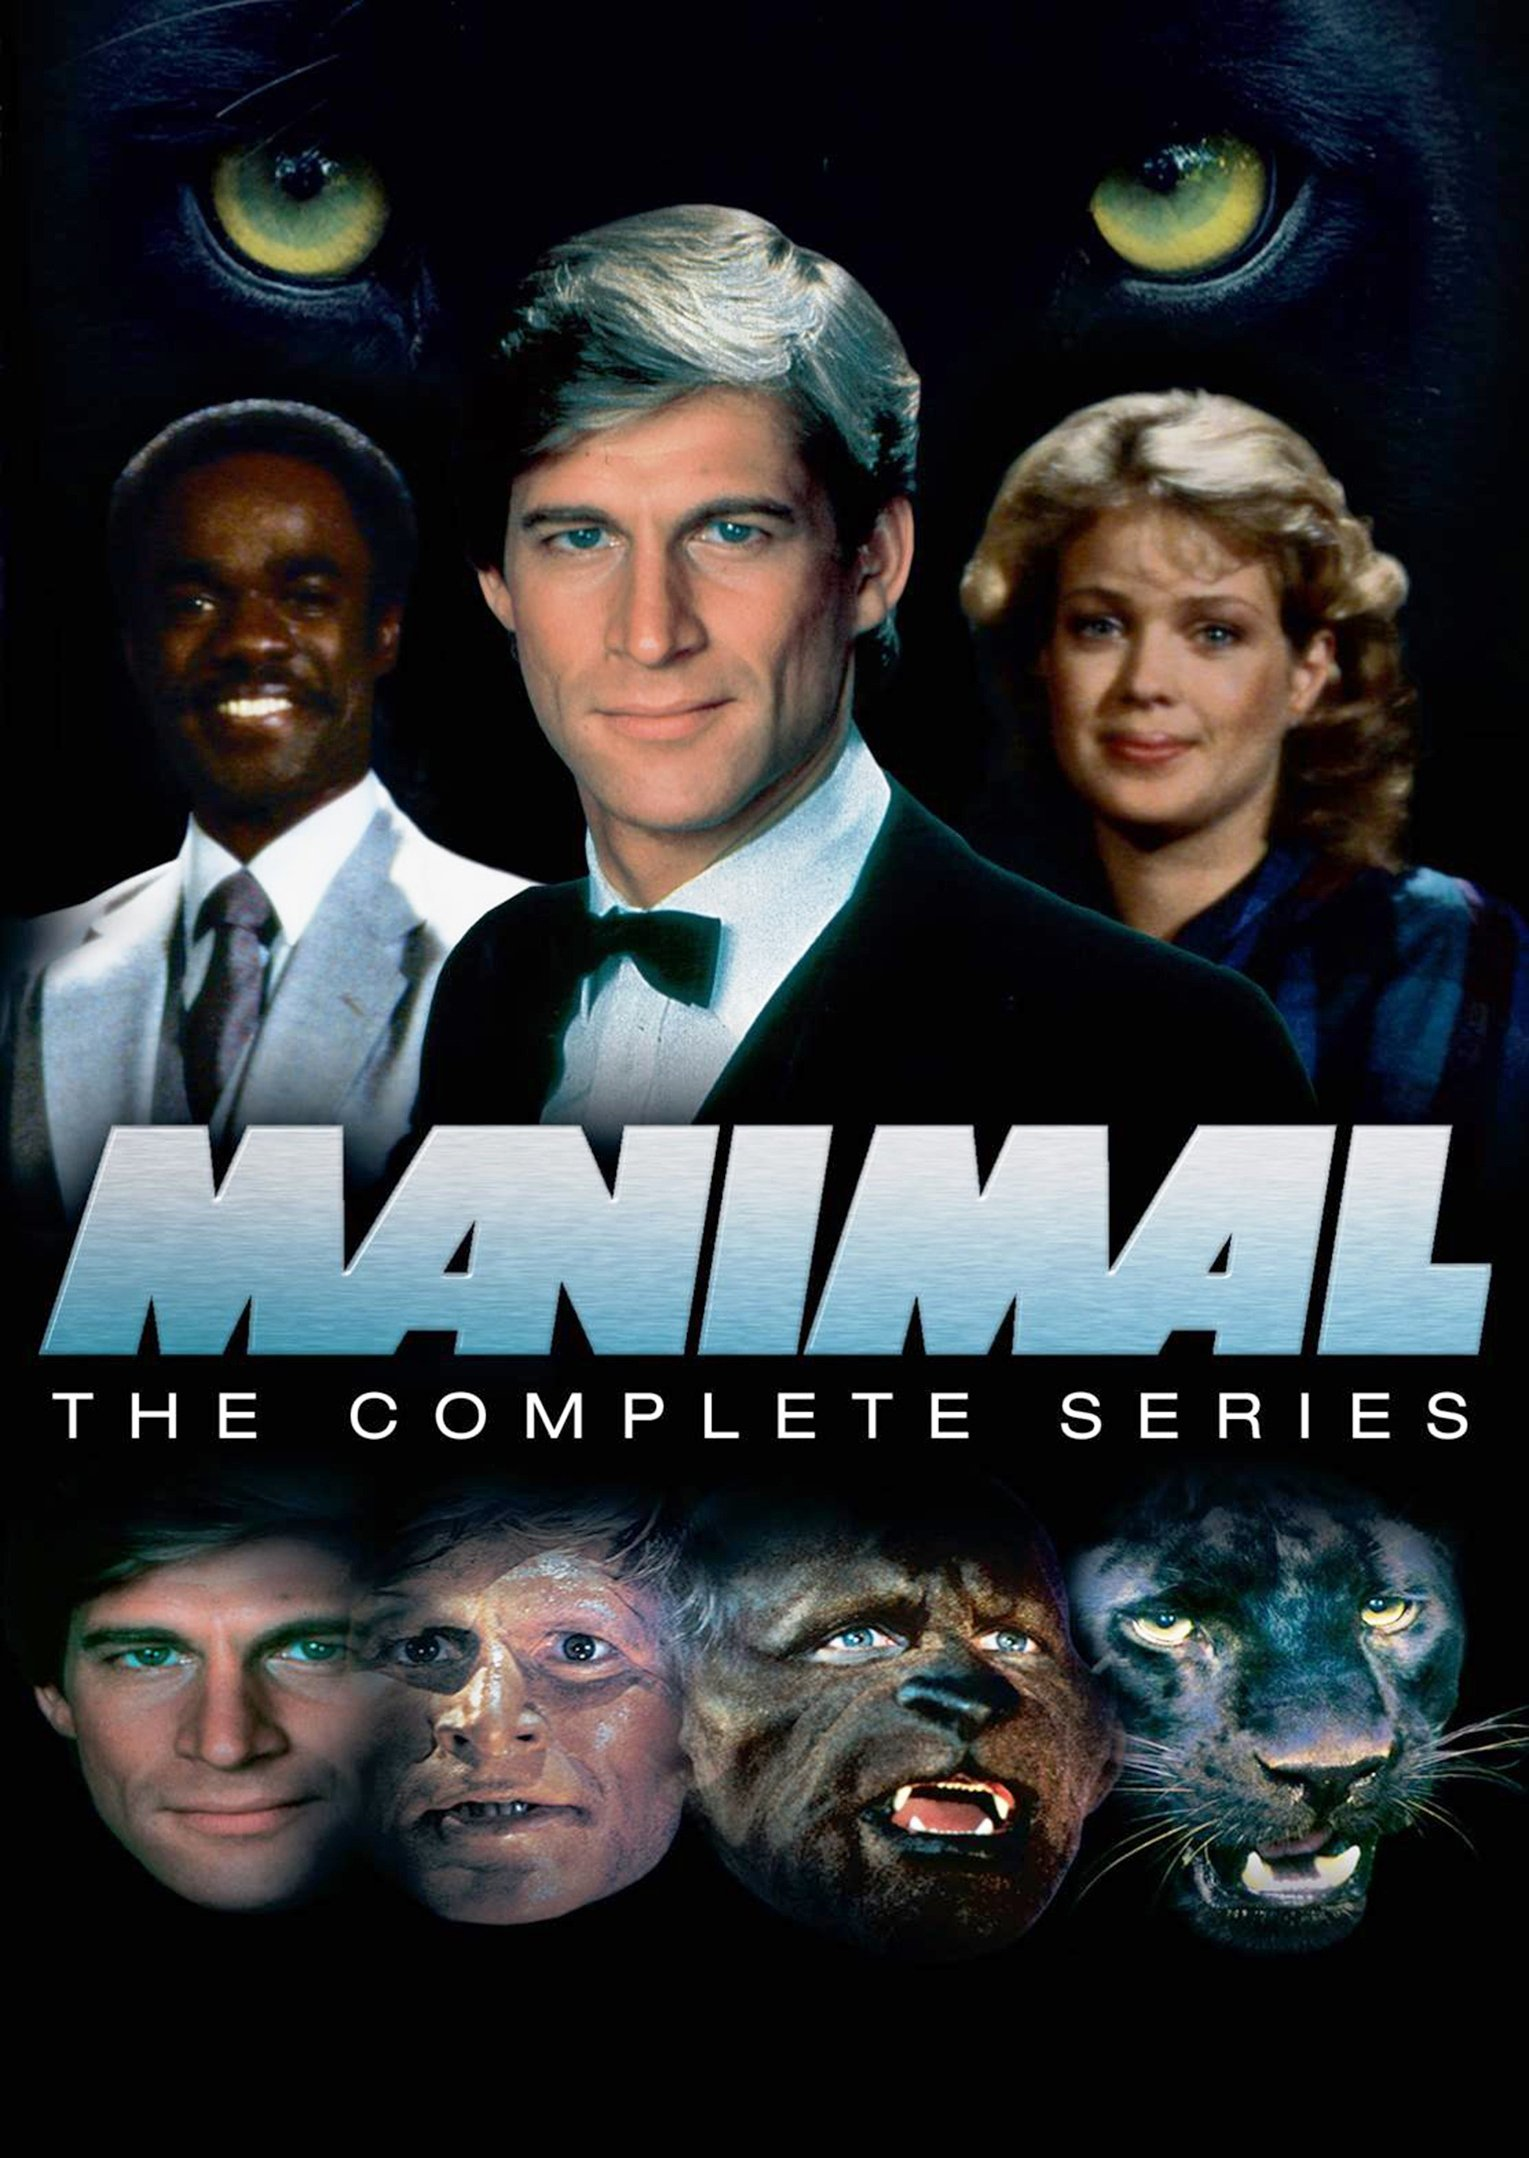 Manimal: The Complete Series